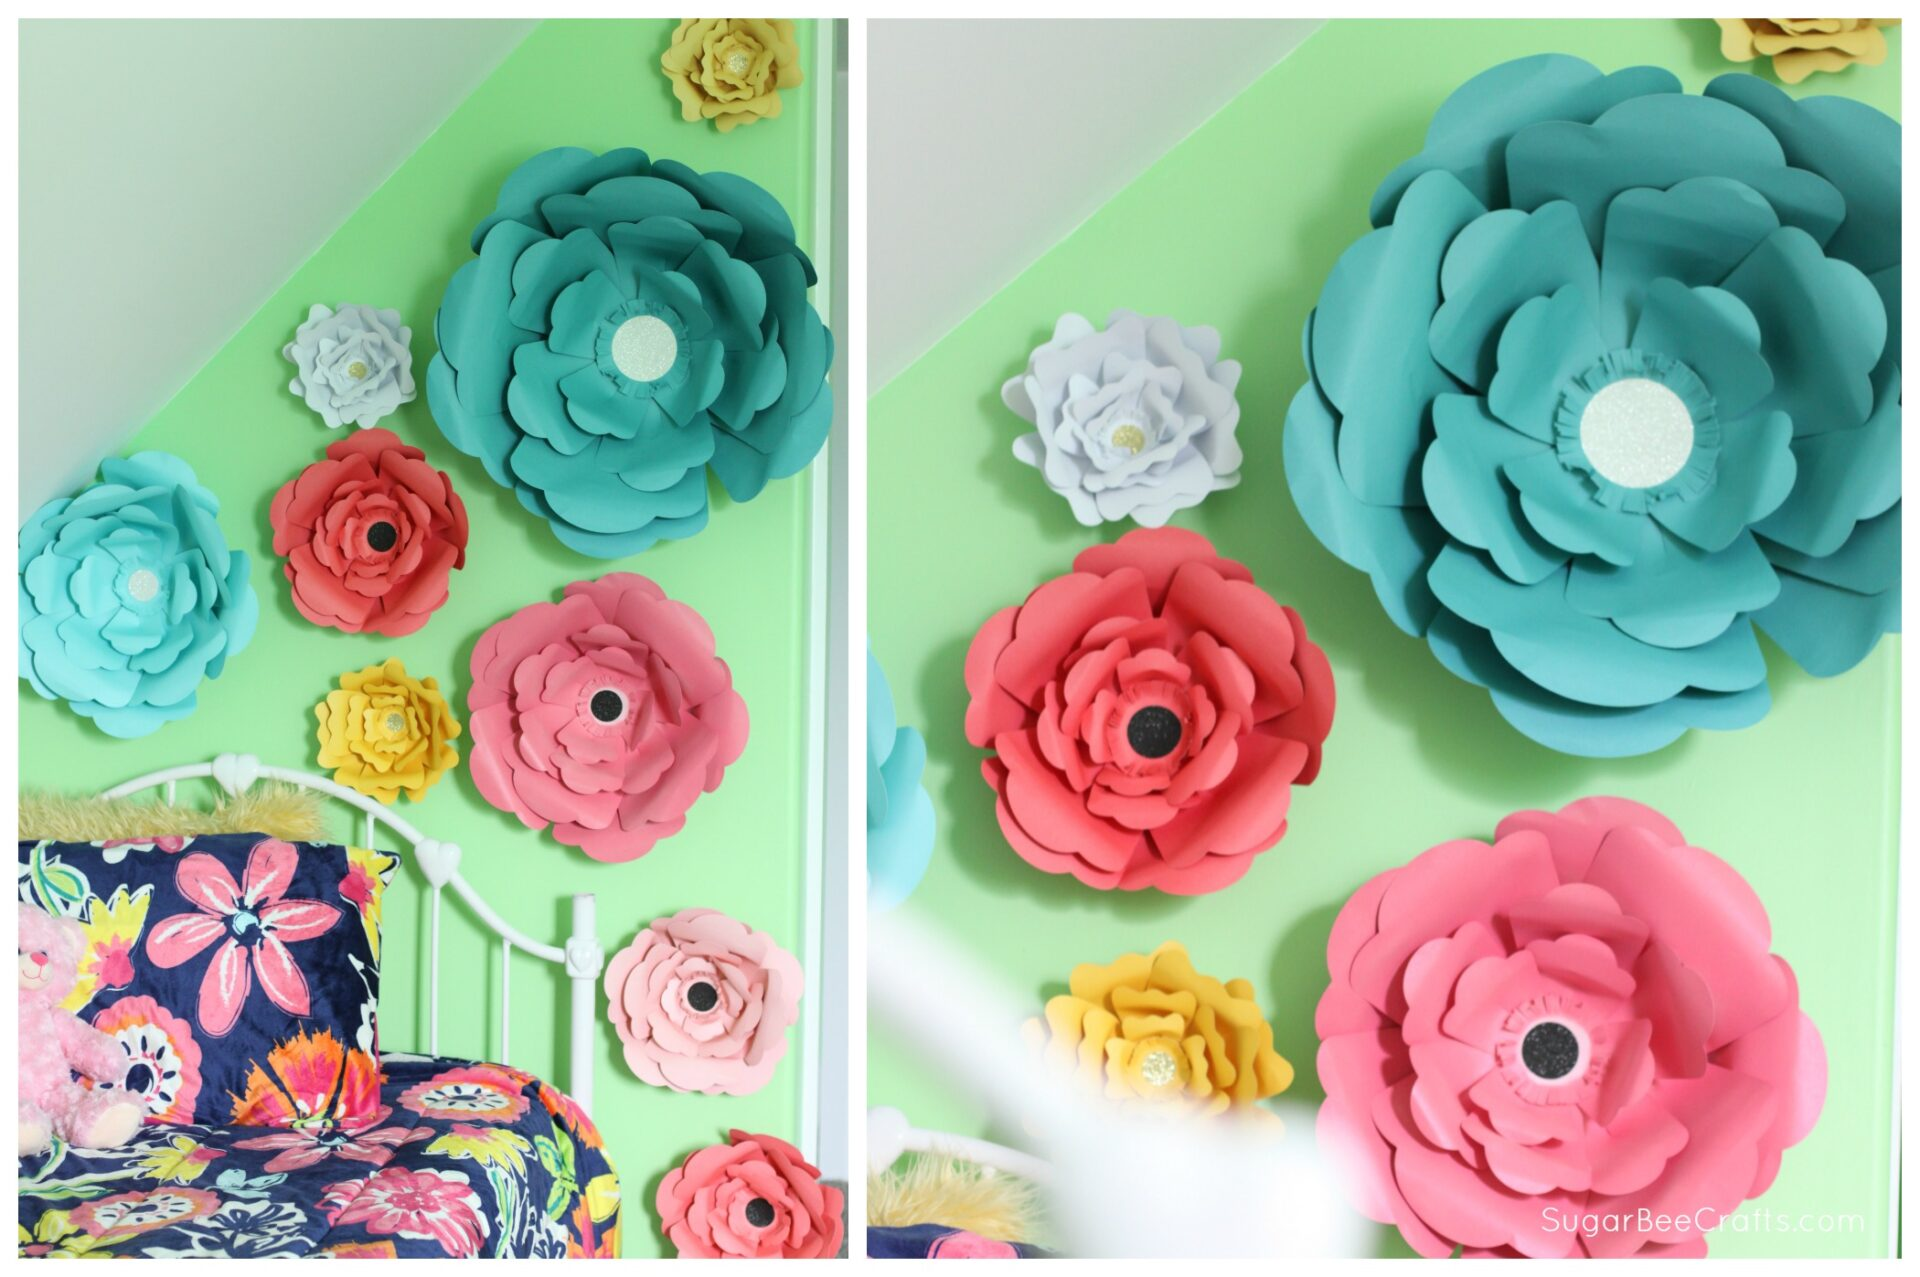 Big bloom paper flower wall decor sugar bee crafts for Decorative flowers for crafts